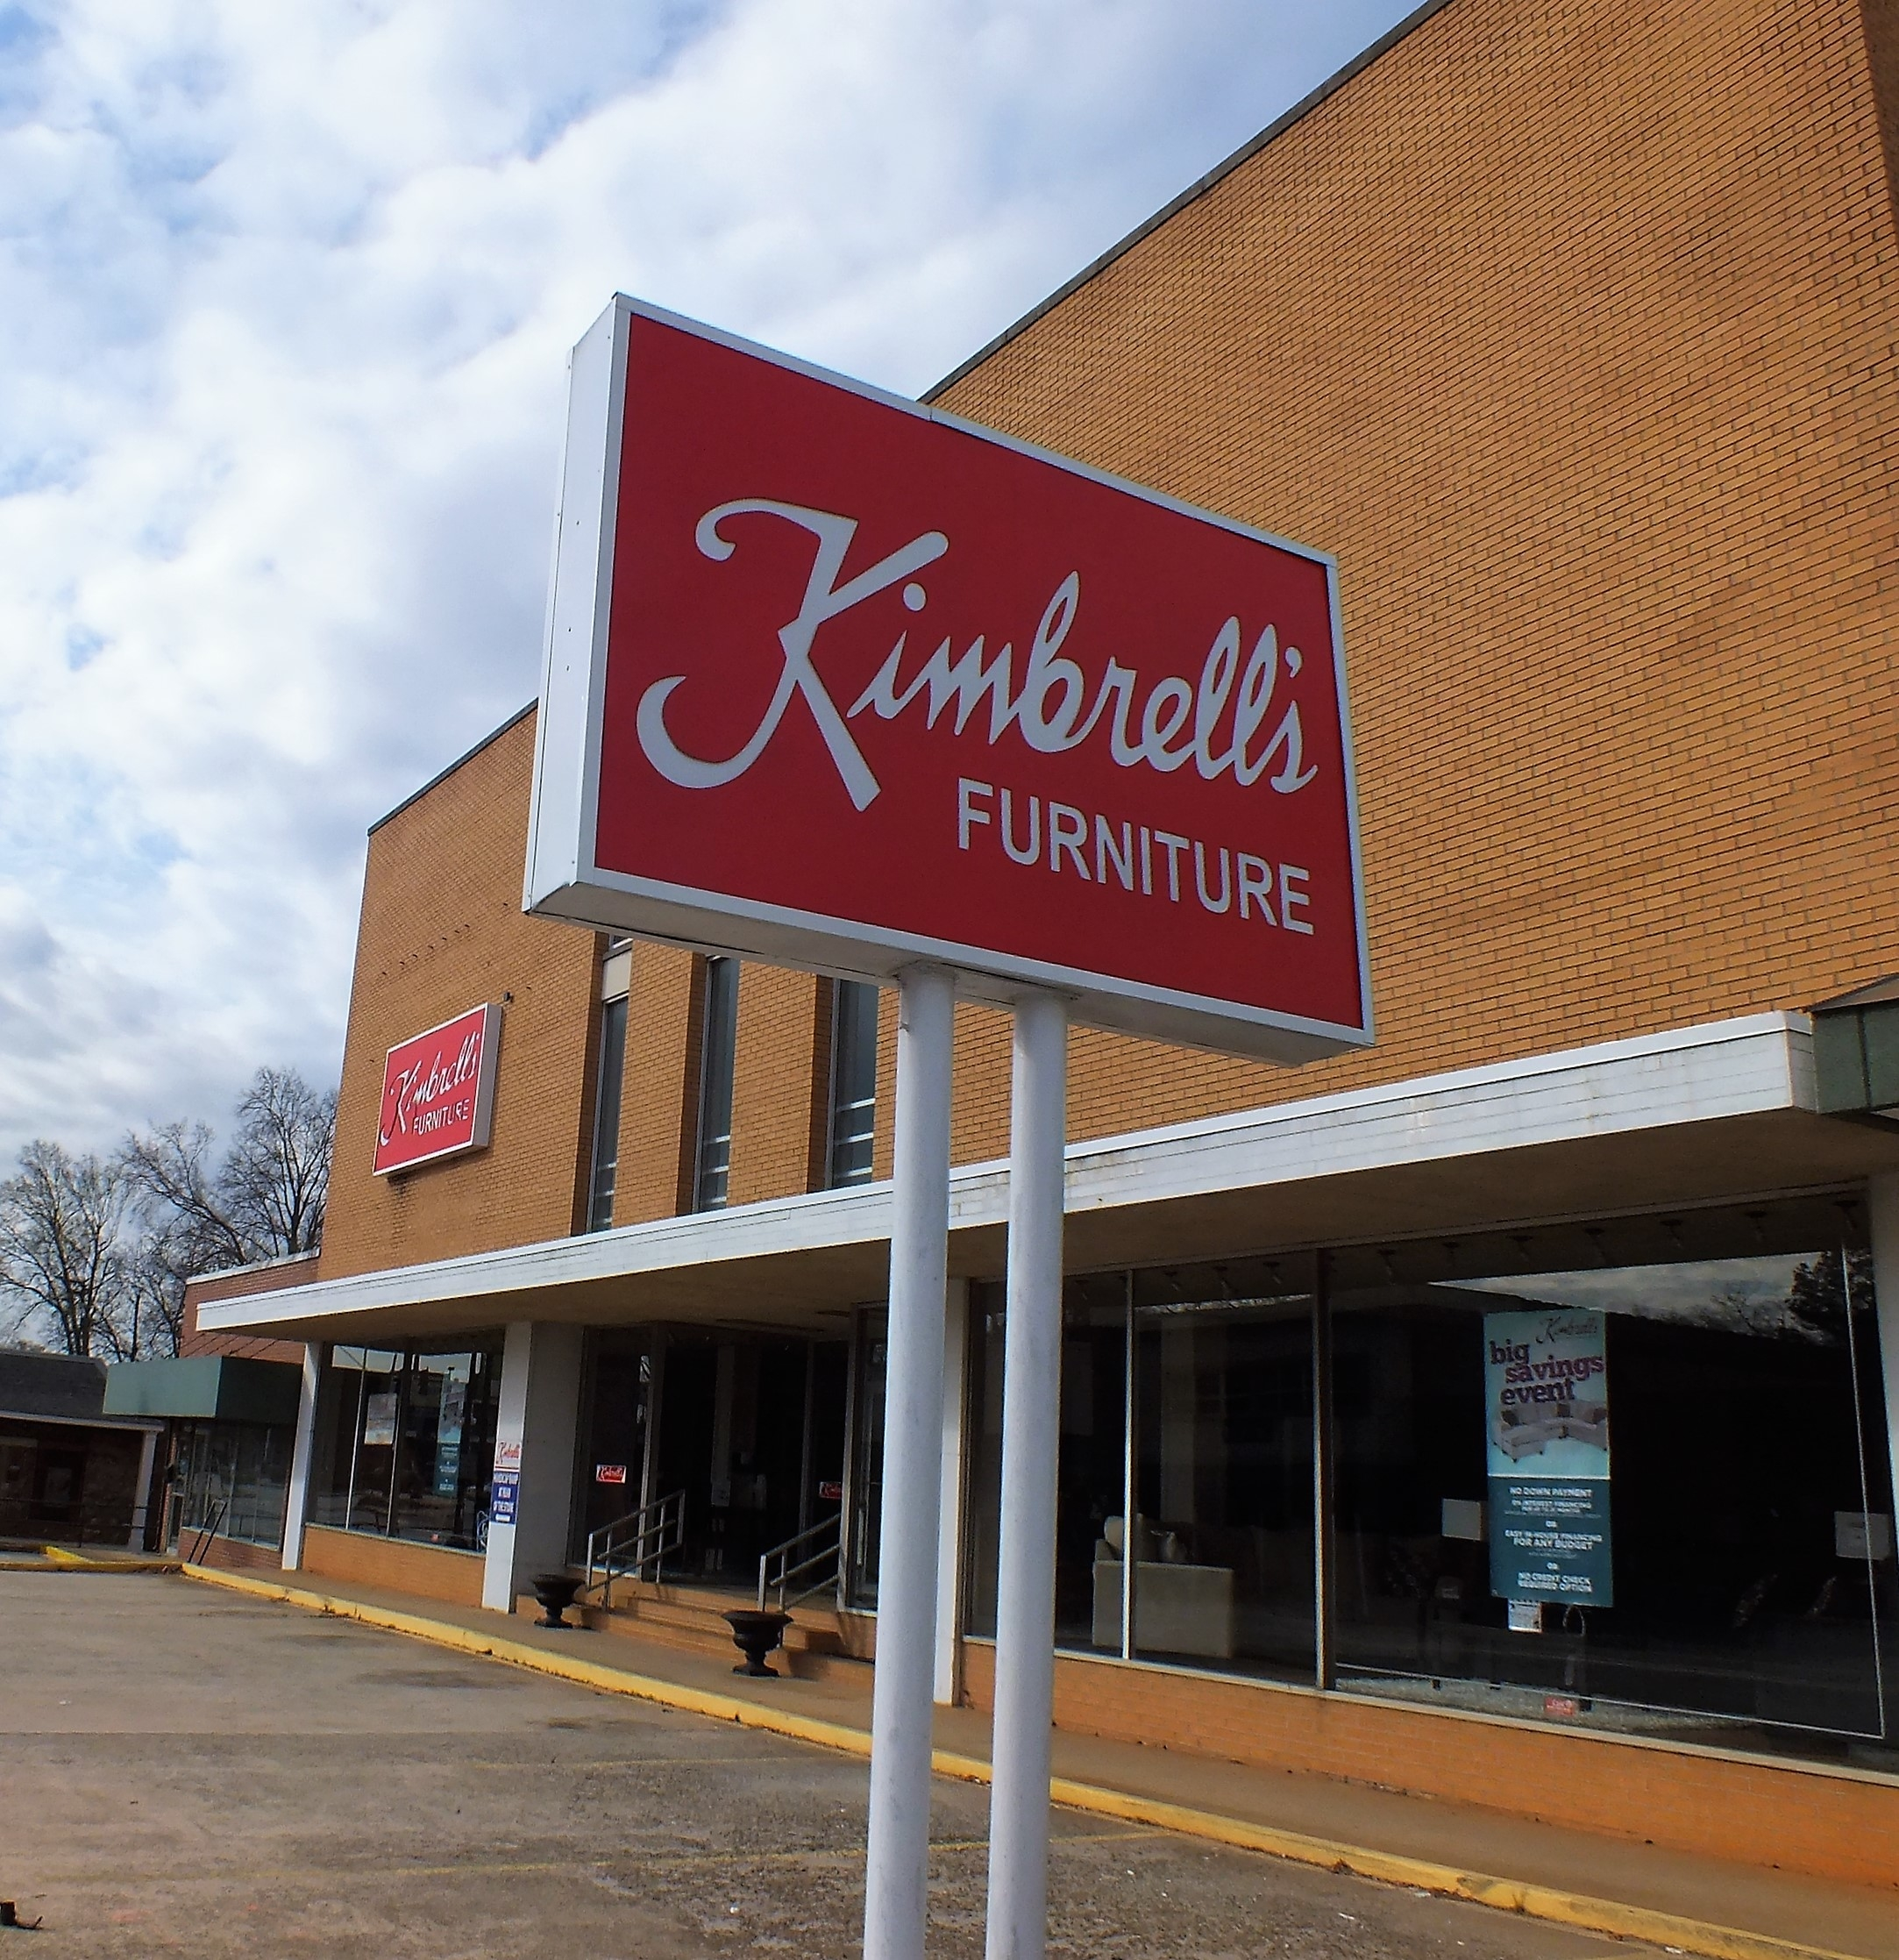 Kimbrell's Furniture